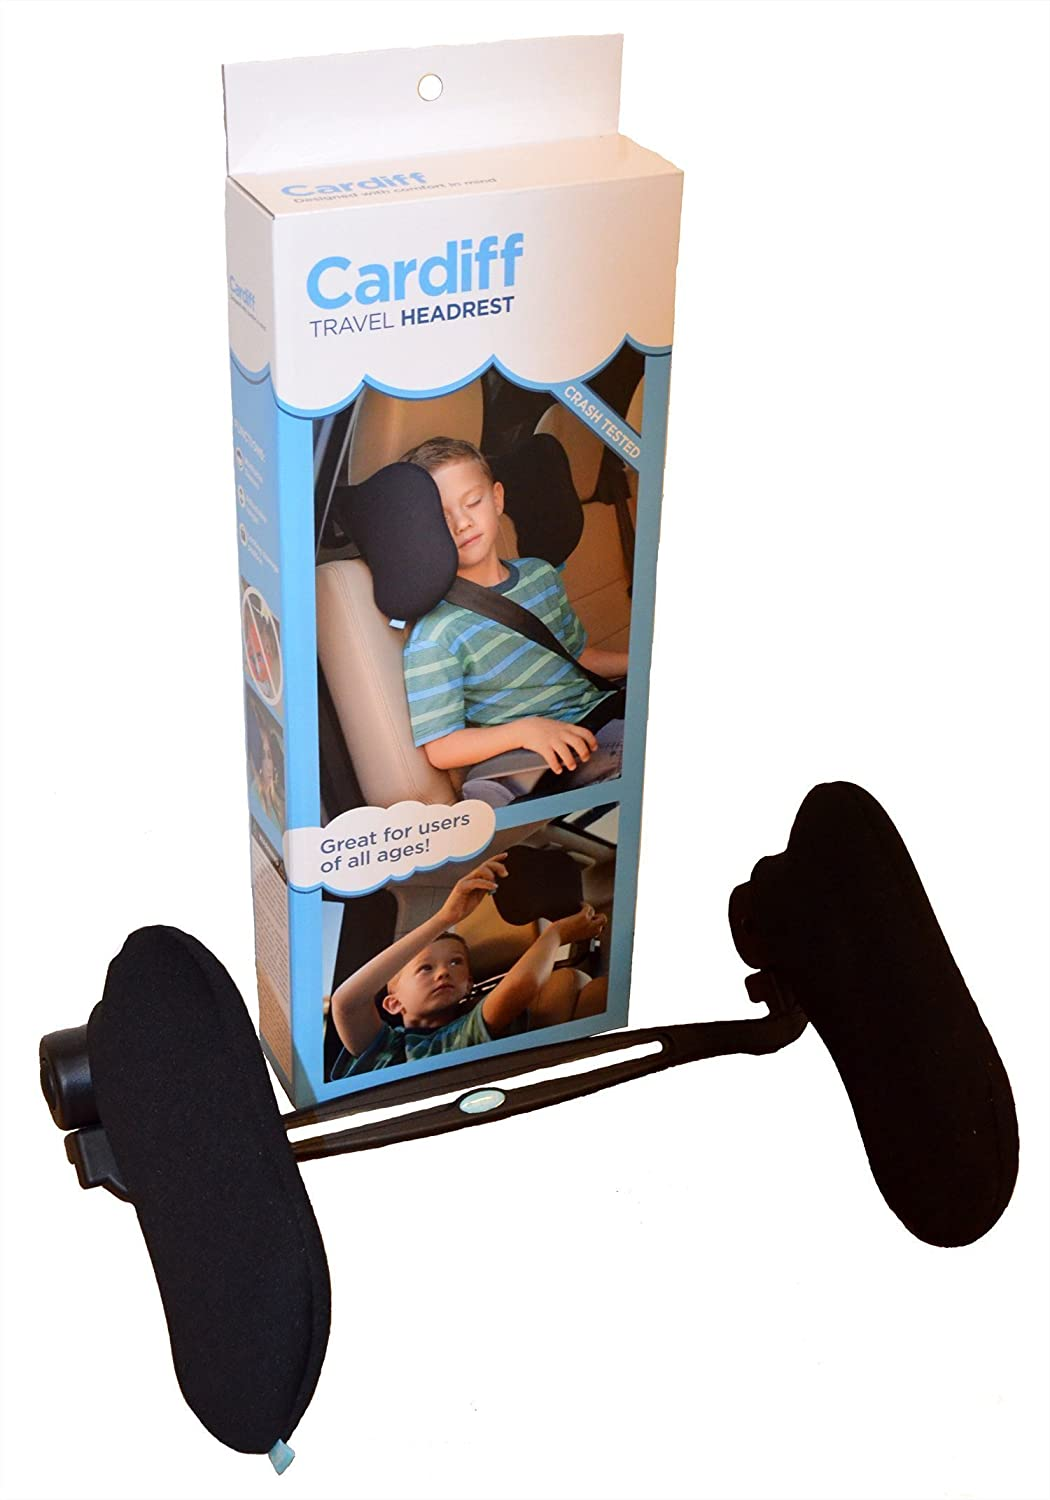 Cardiff Booster Seat Headrest, Black BL-1001